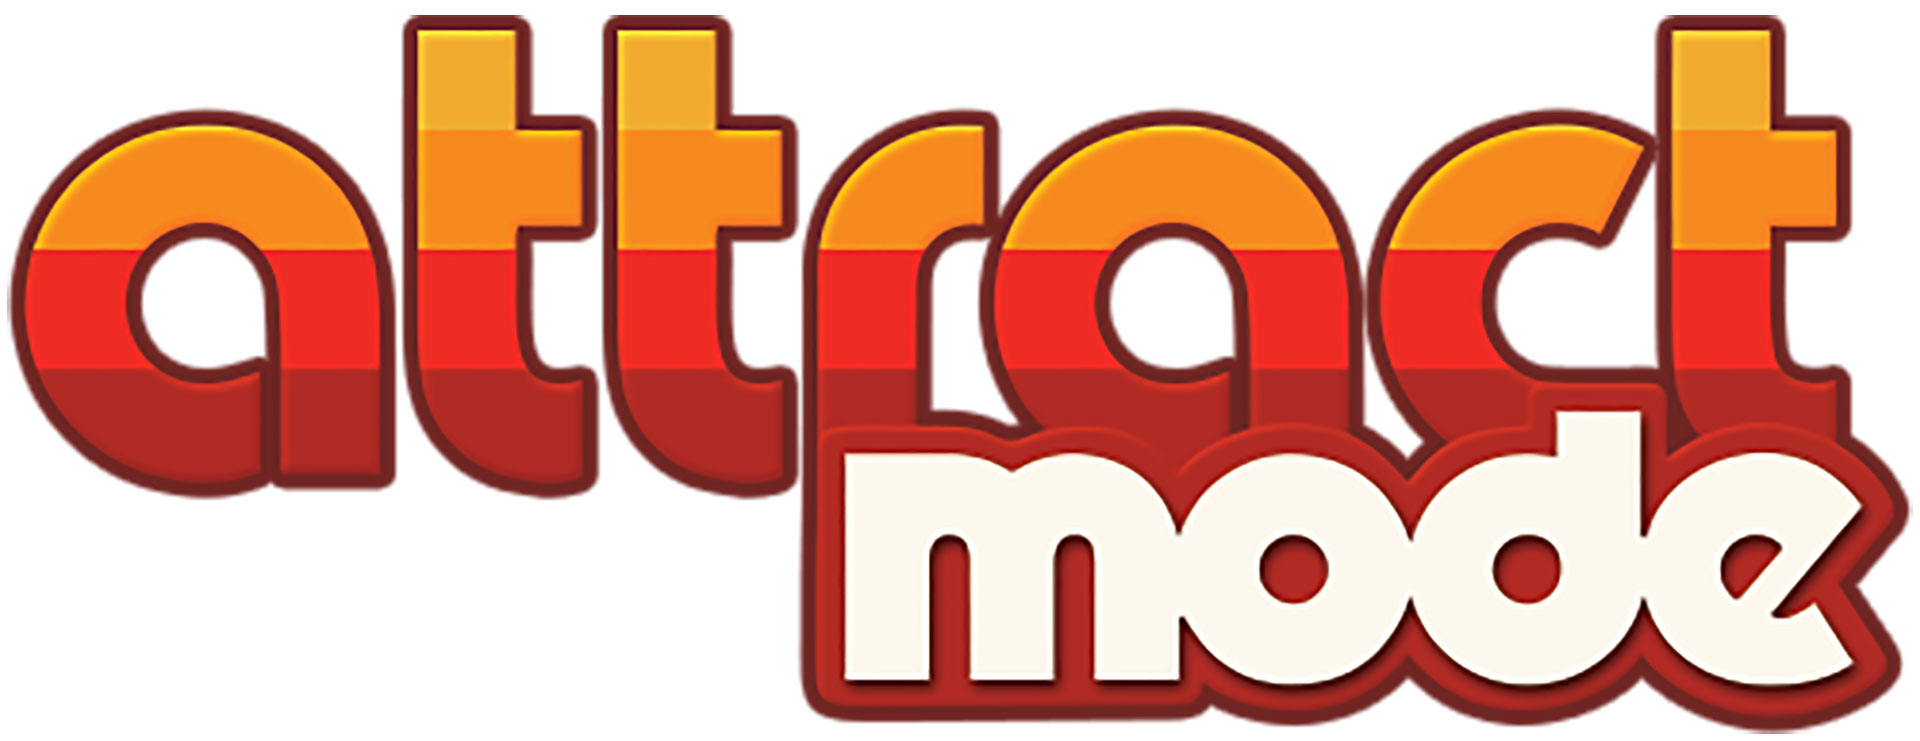 Attract Mode (Logo)